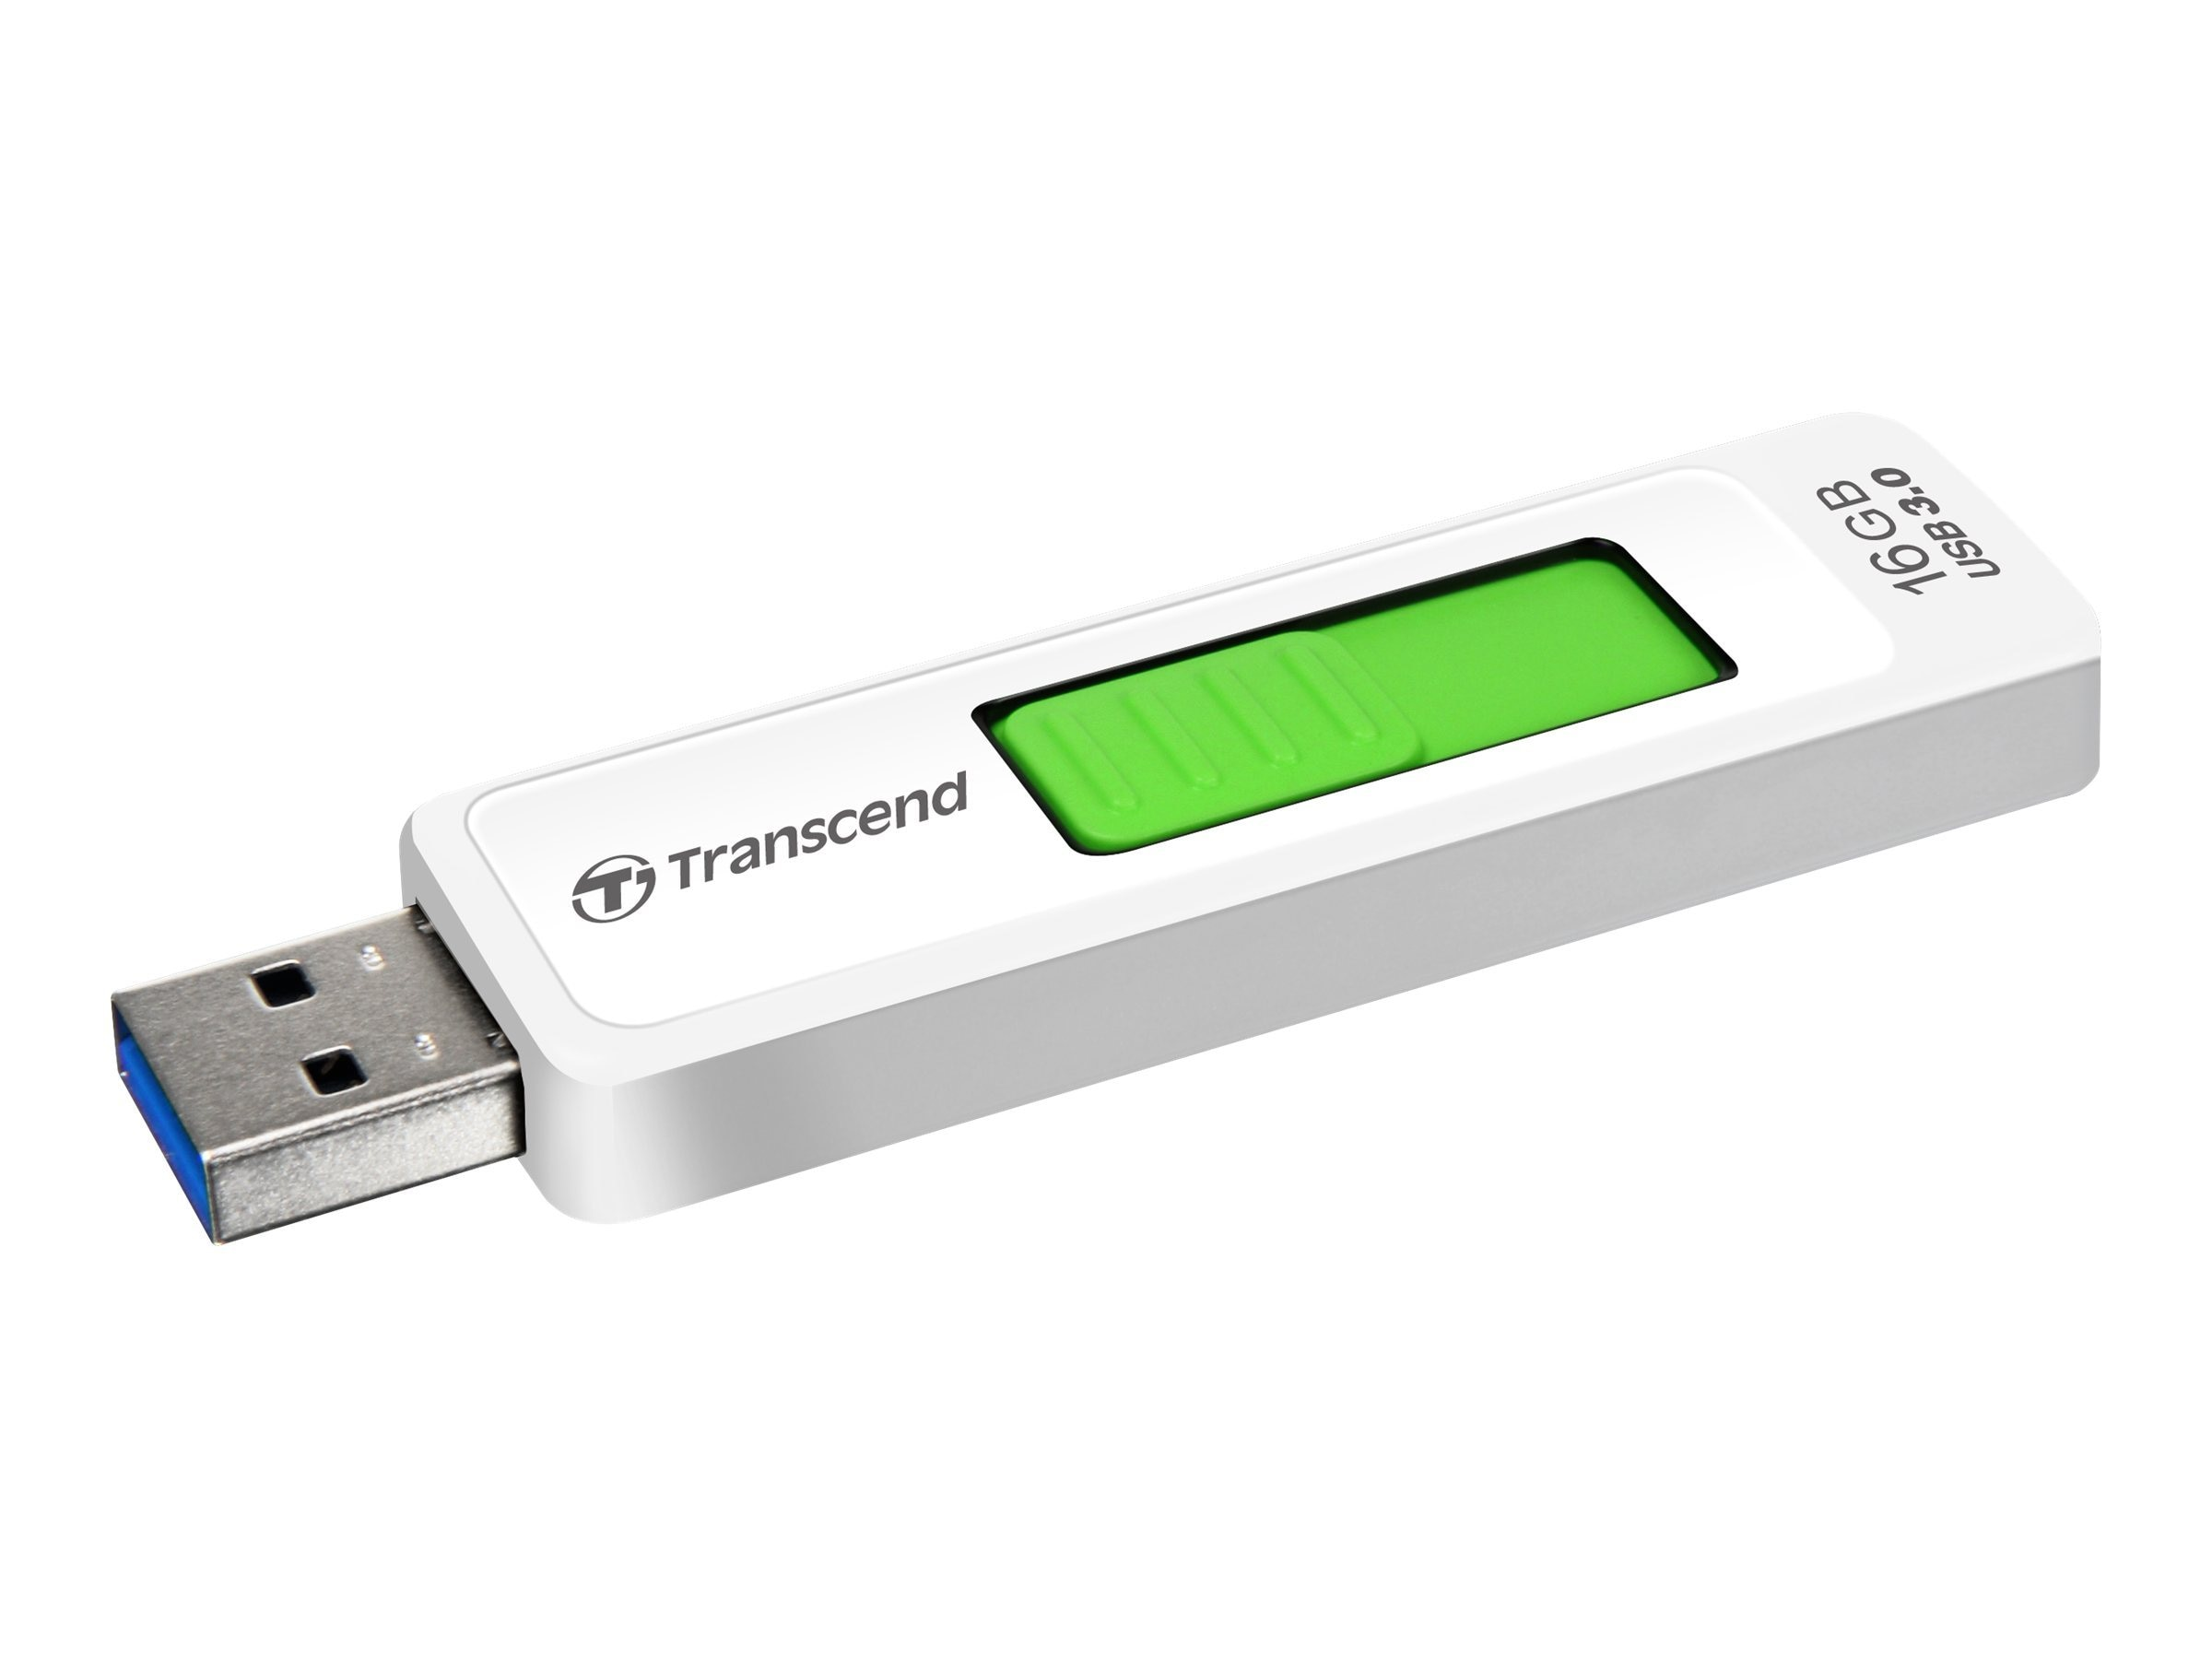 Transcend 16GB JetFlash 770 USB 3.0 Flash Drive, TS16GJF770, 15676214, Flash Drives